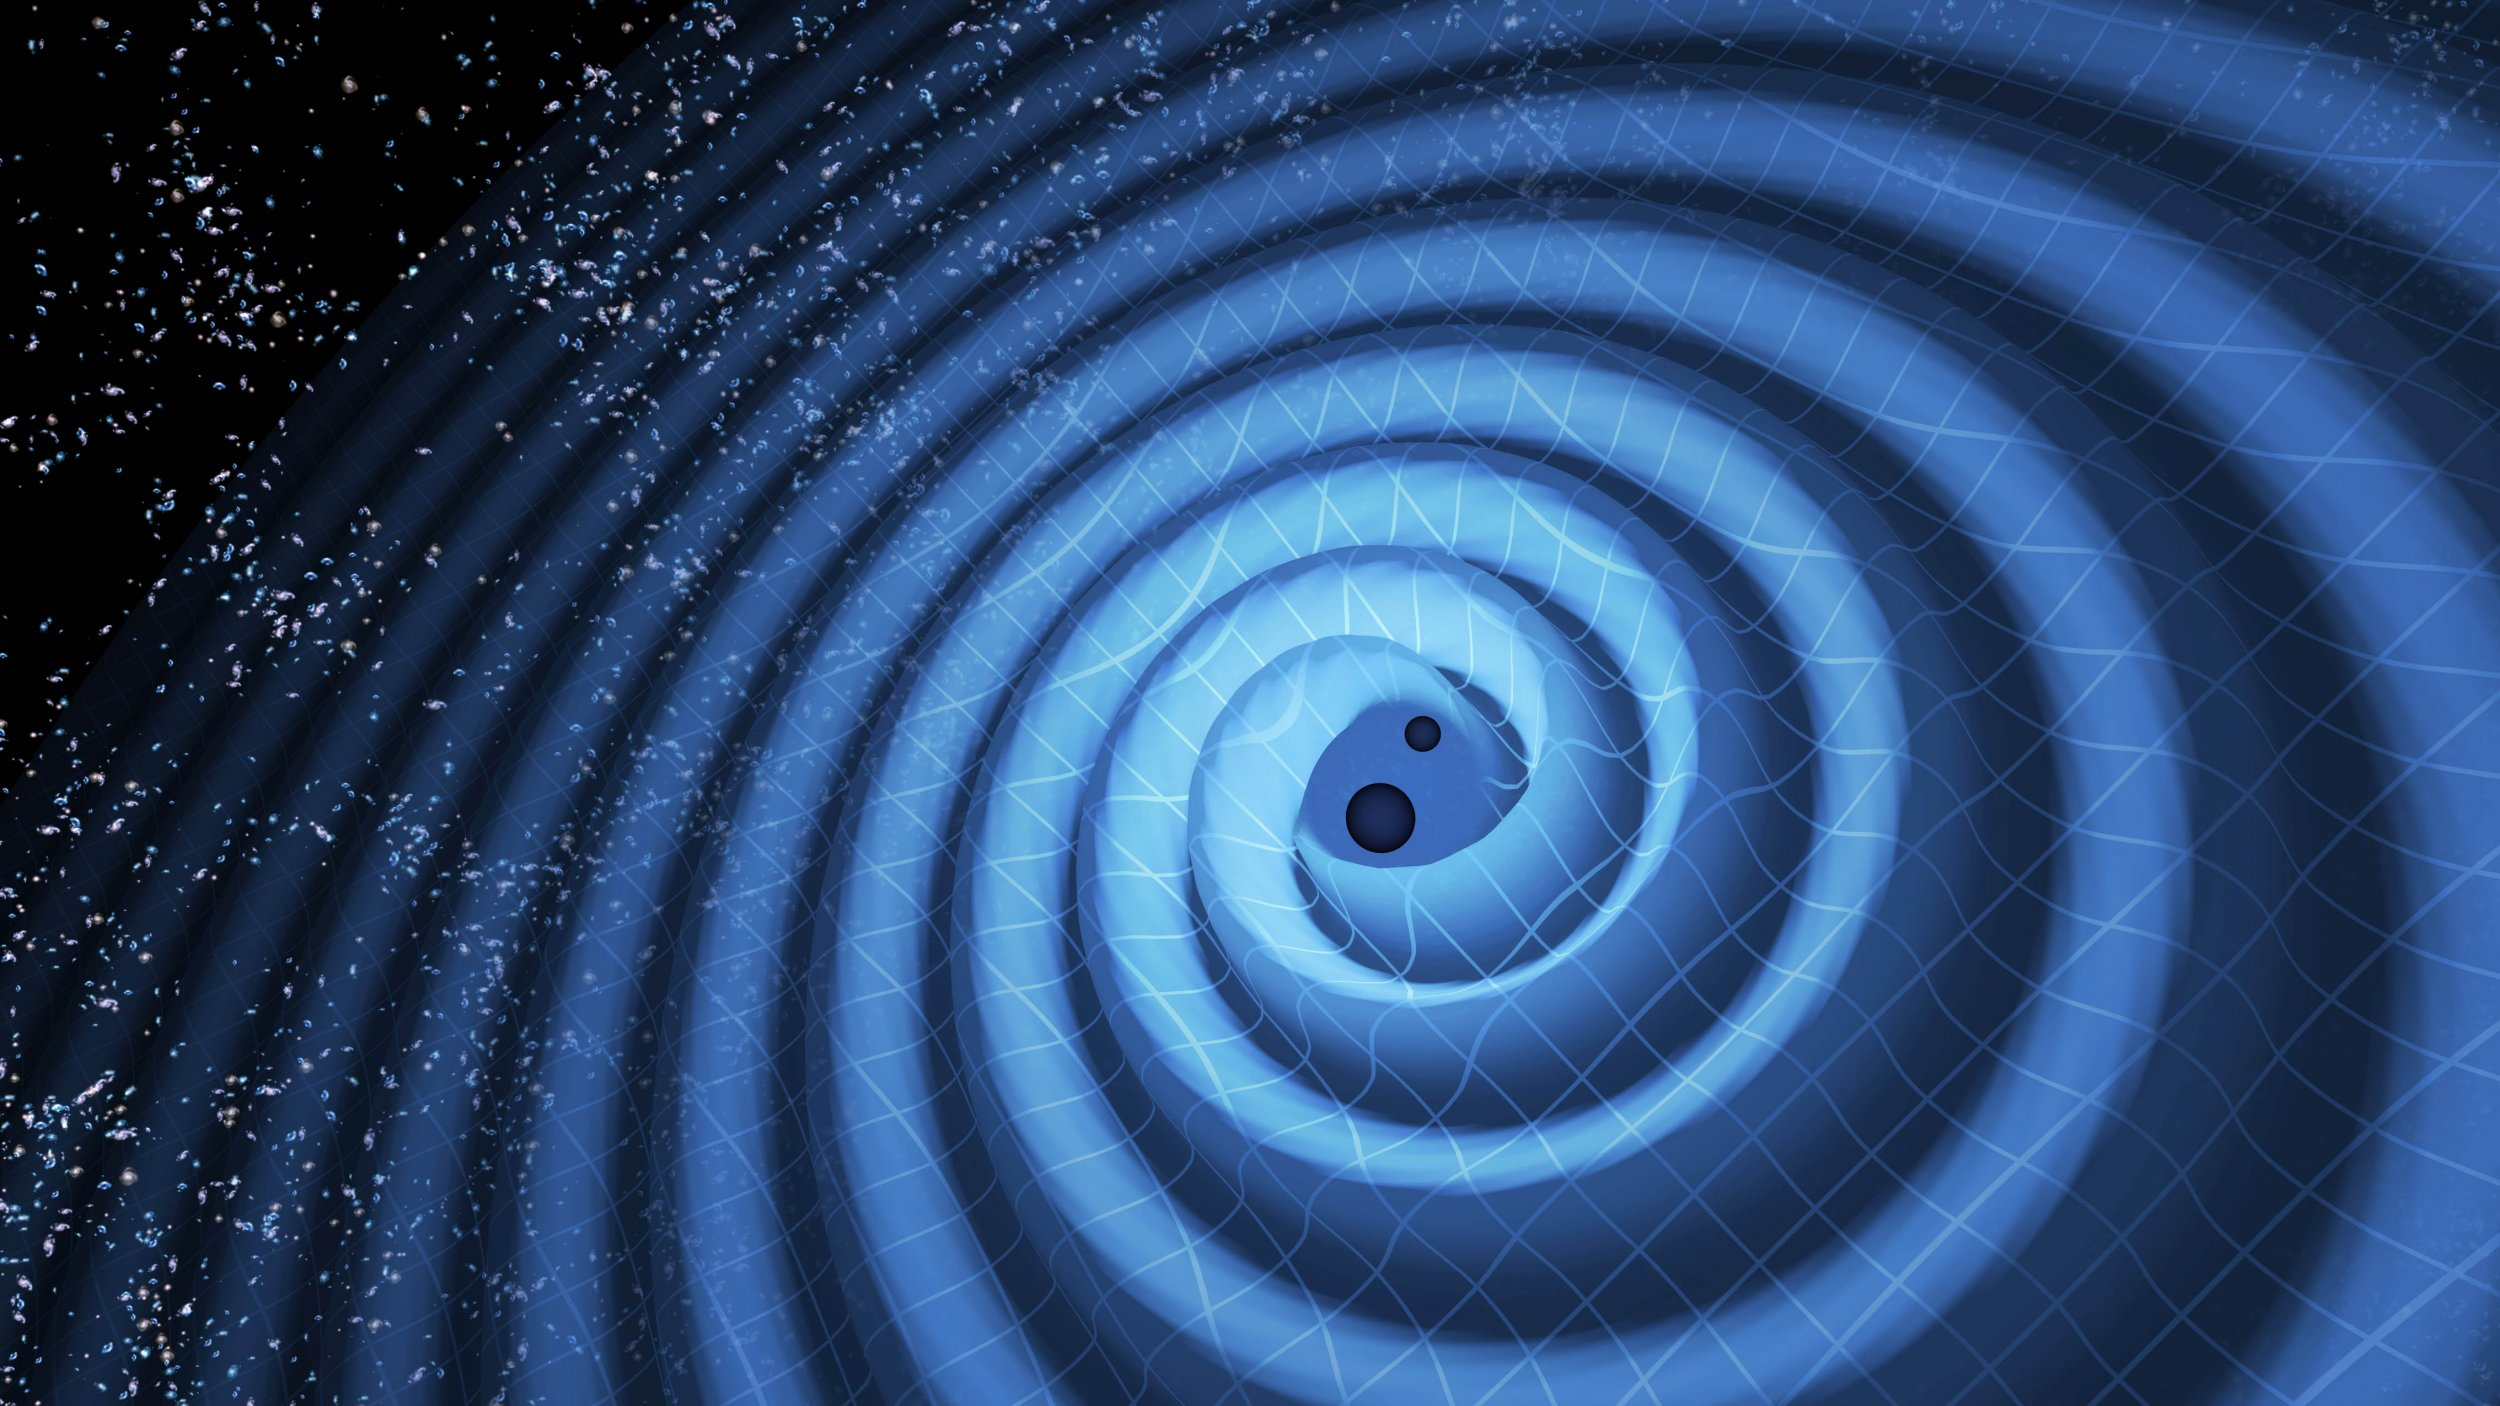 06_15_LIGO_Gravitational_Waves_Second_Discovery_02